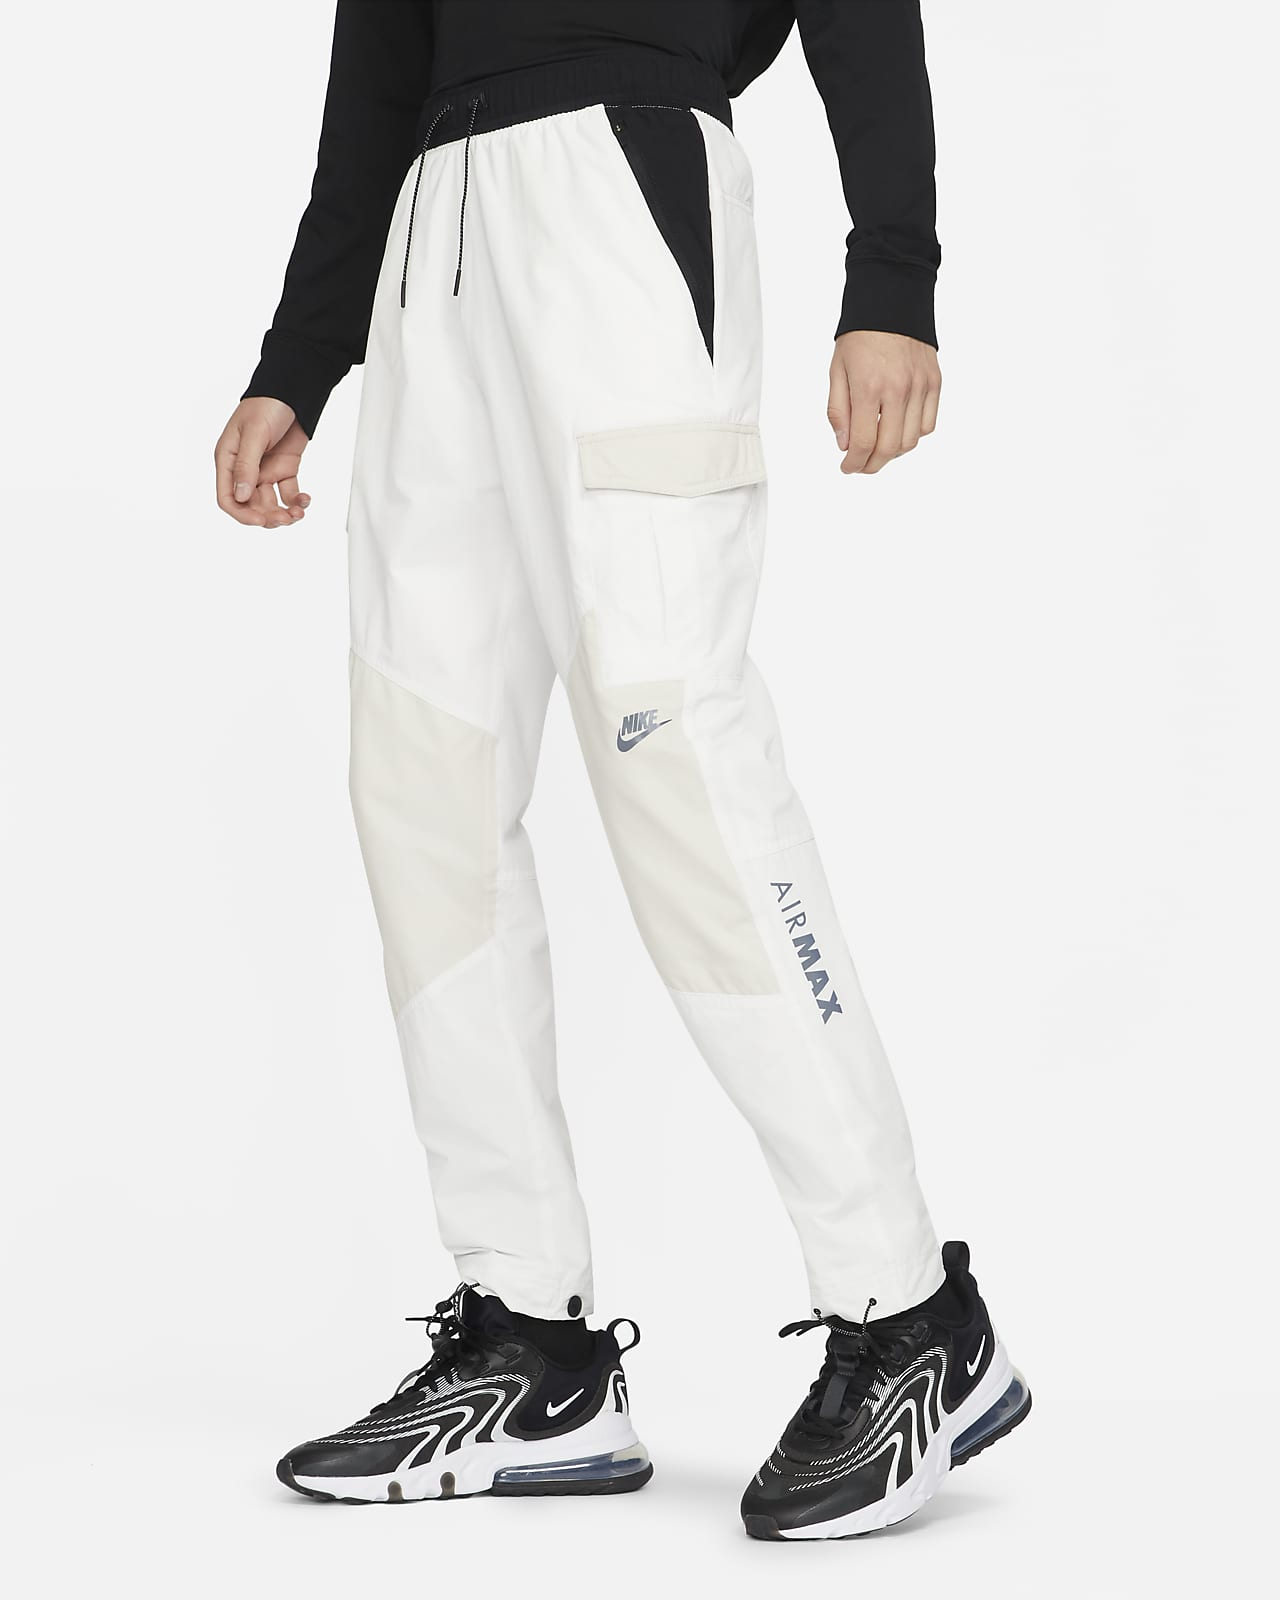 Nike Air Max Men's Woven Cargo Trousers